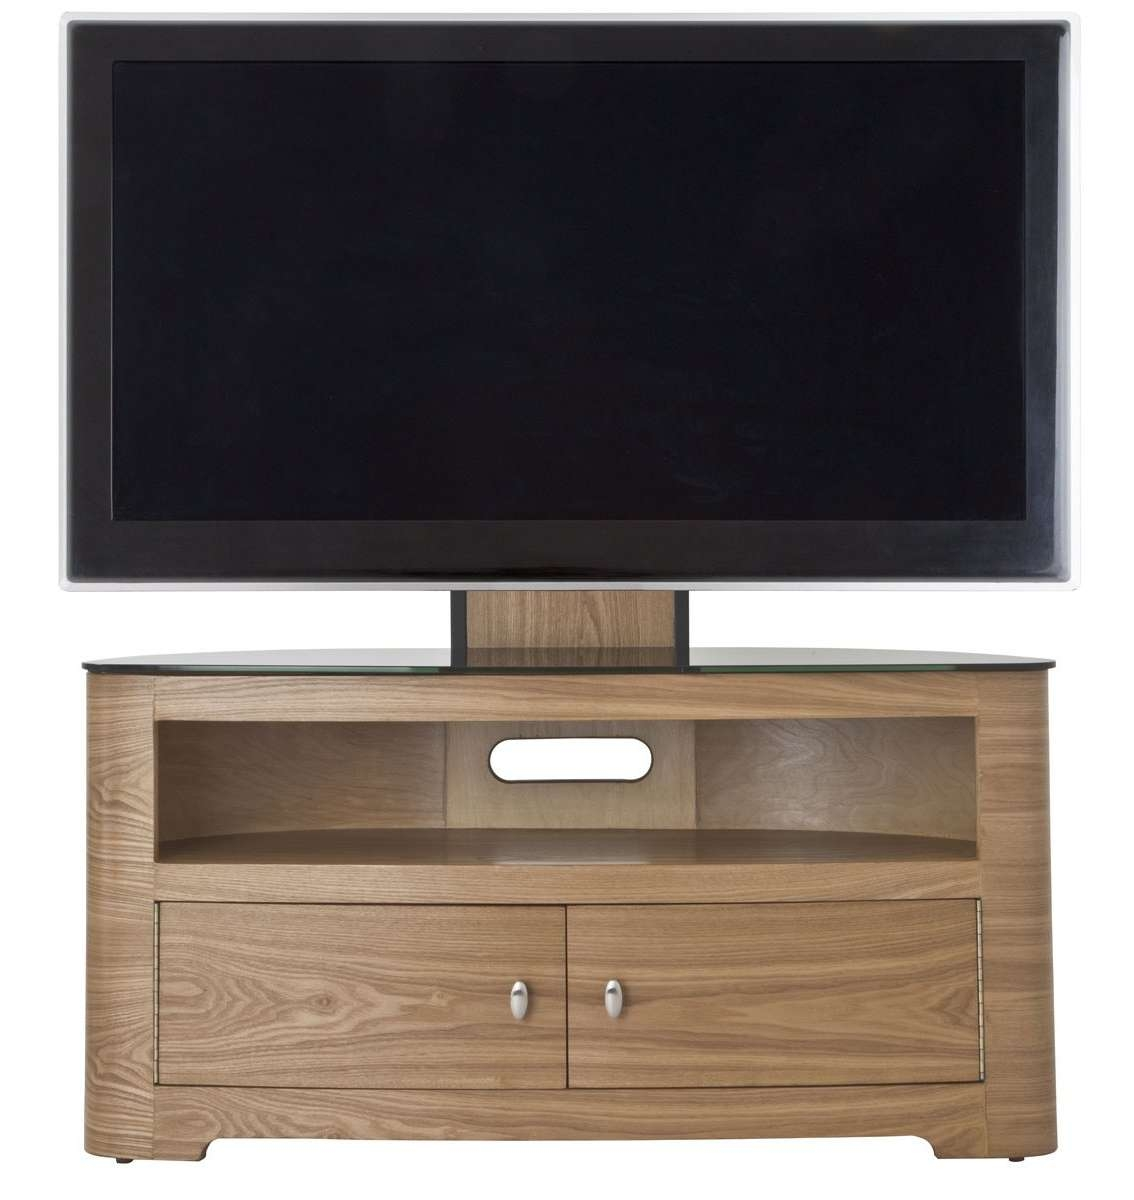 Avf Blenheim Oak Cantilever Tv Stand Intended For Double Tv Stands (View 11 of 15)